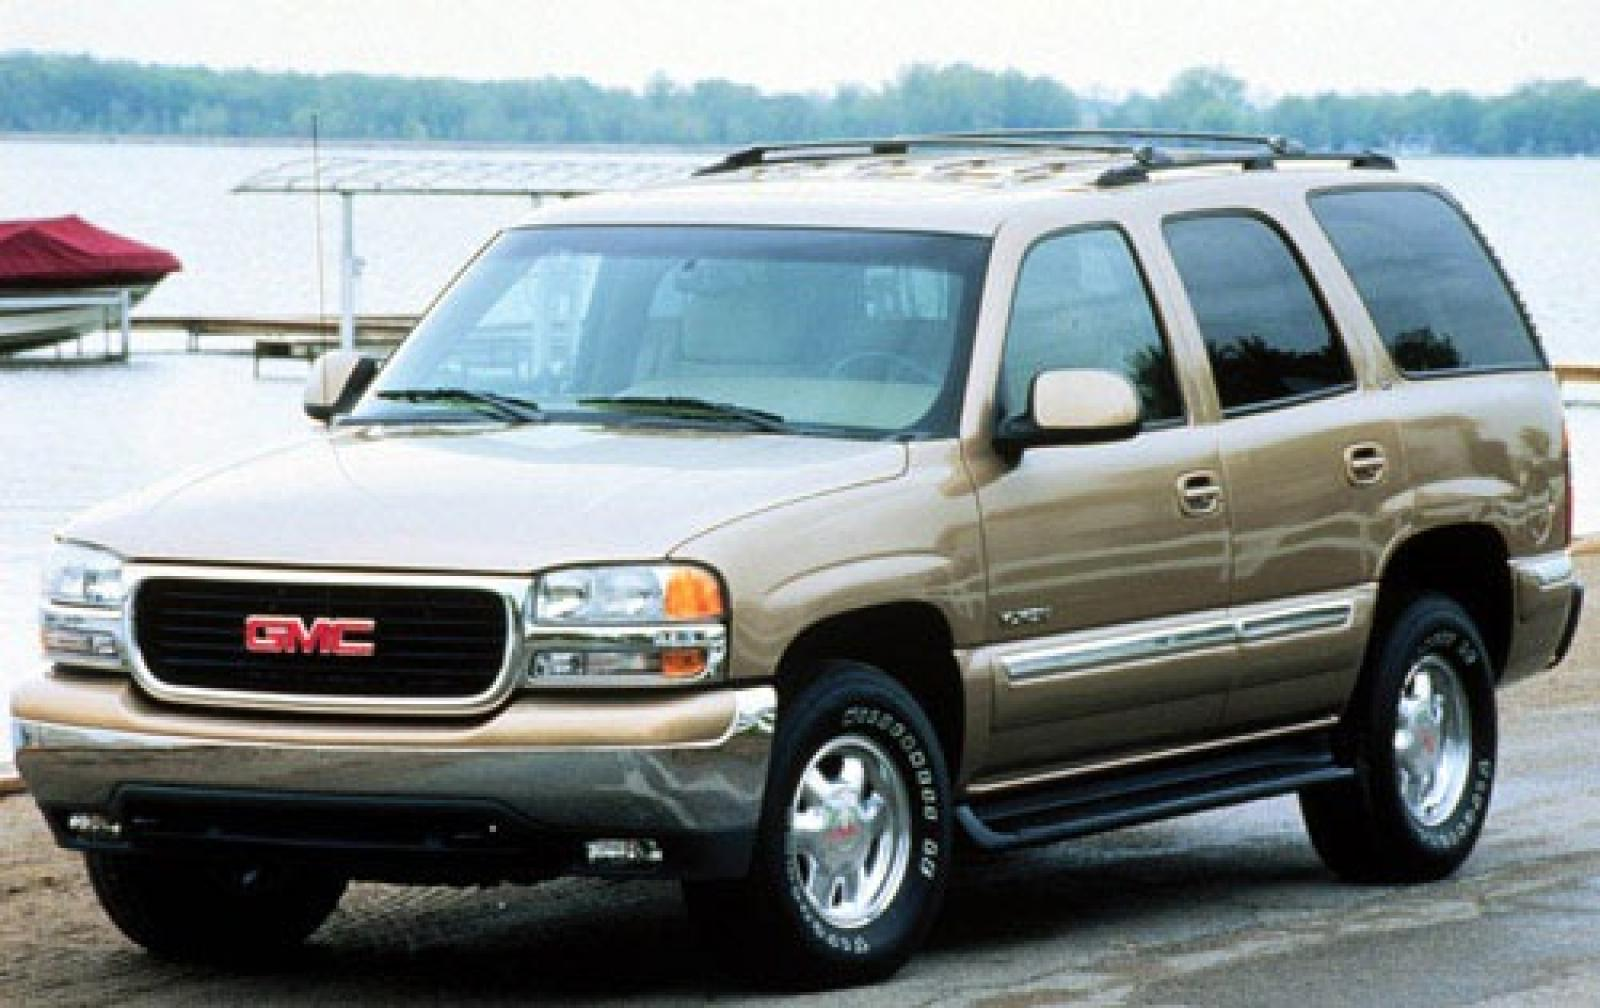 2001 gmc yukon information and photos zombiedrive. Black Bedroom Furniture Sets. Home Design Ideas